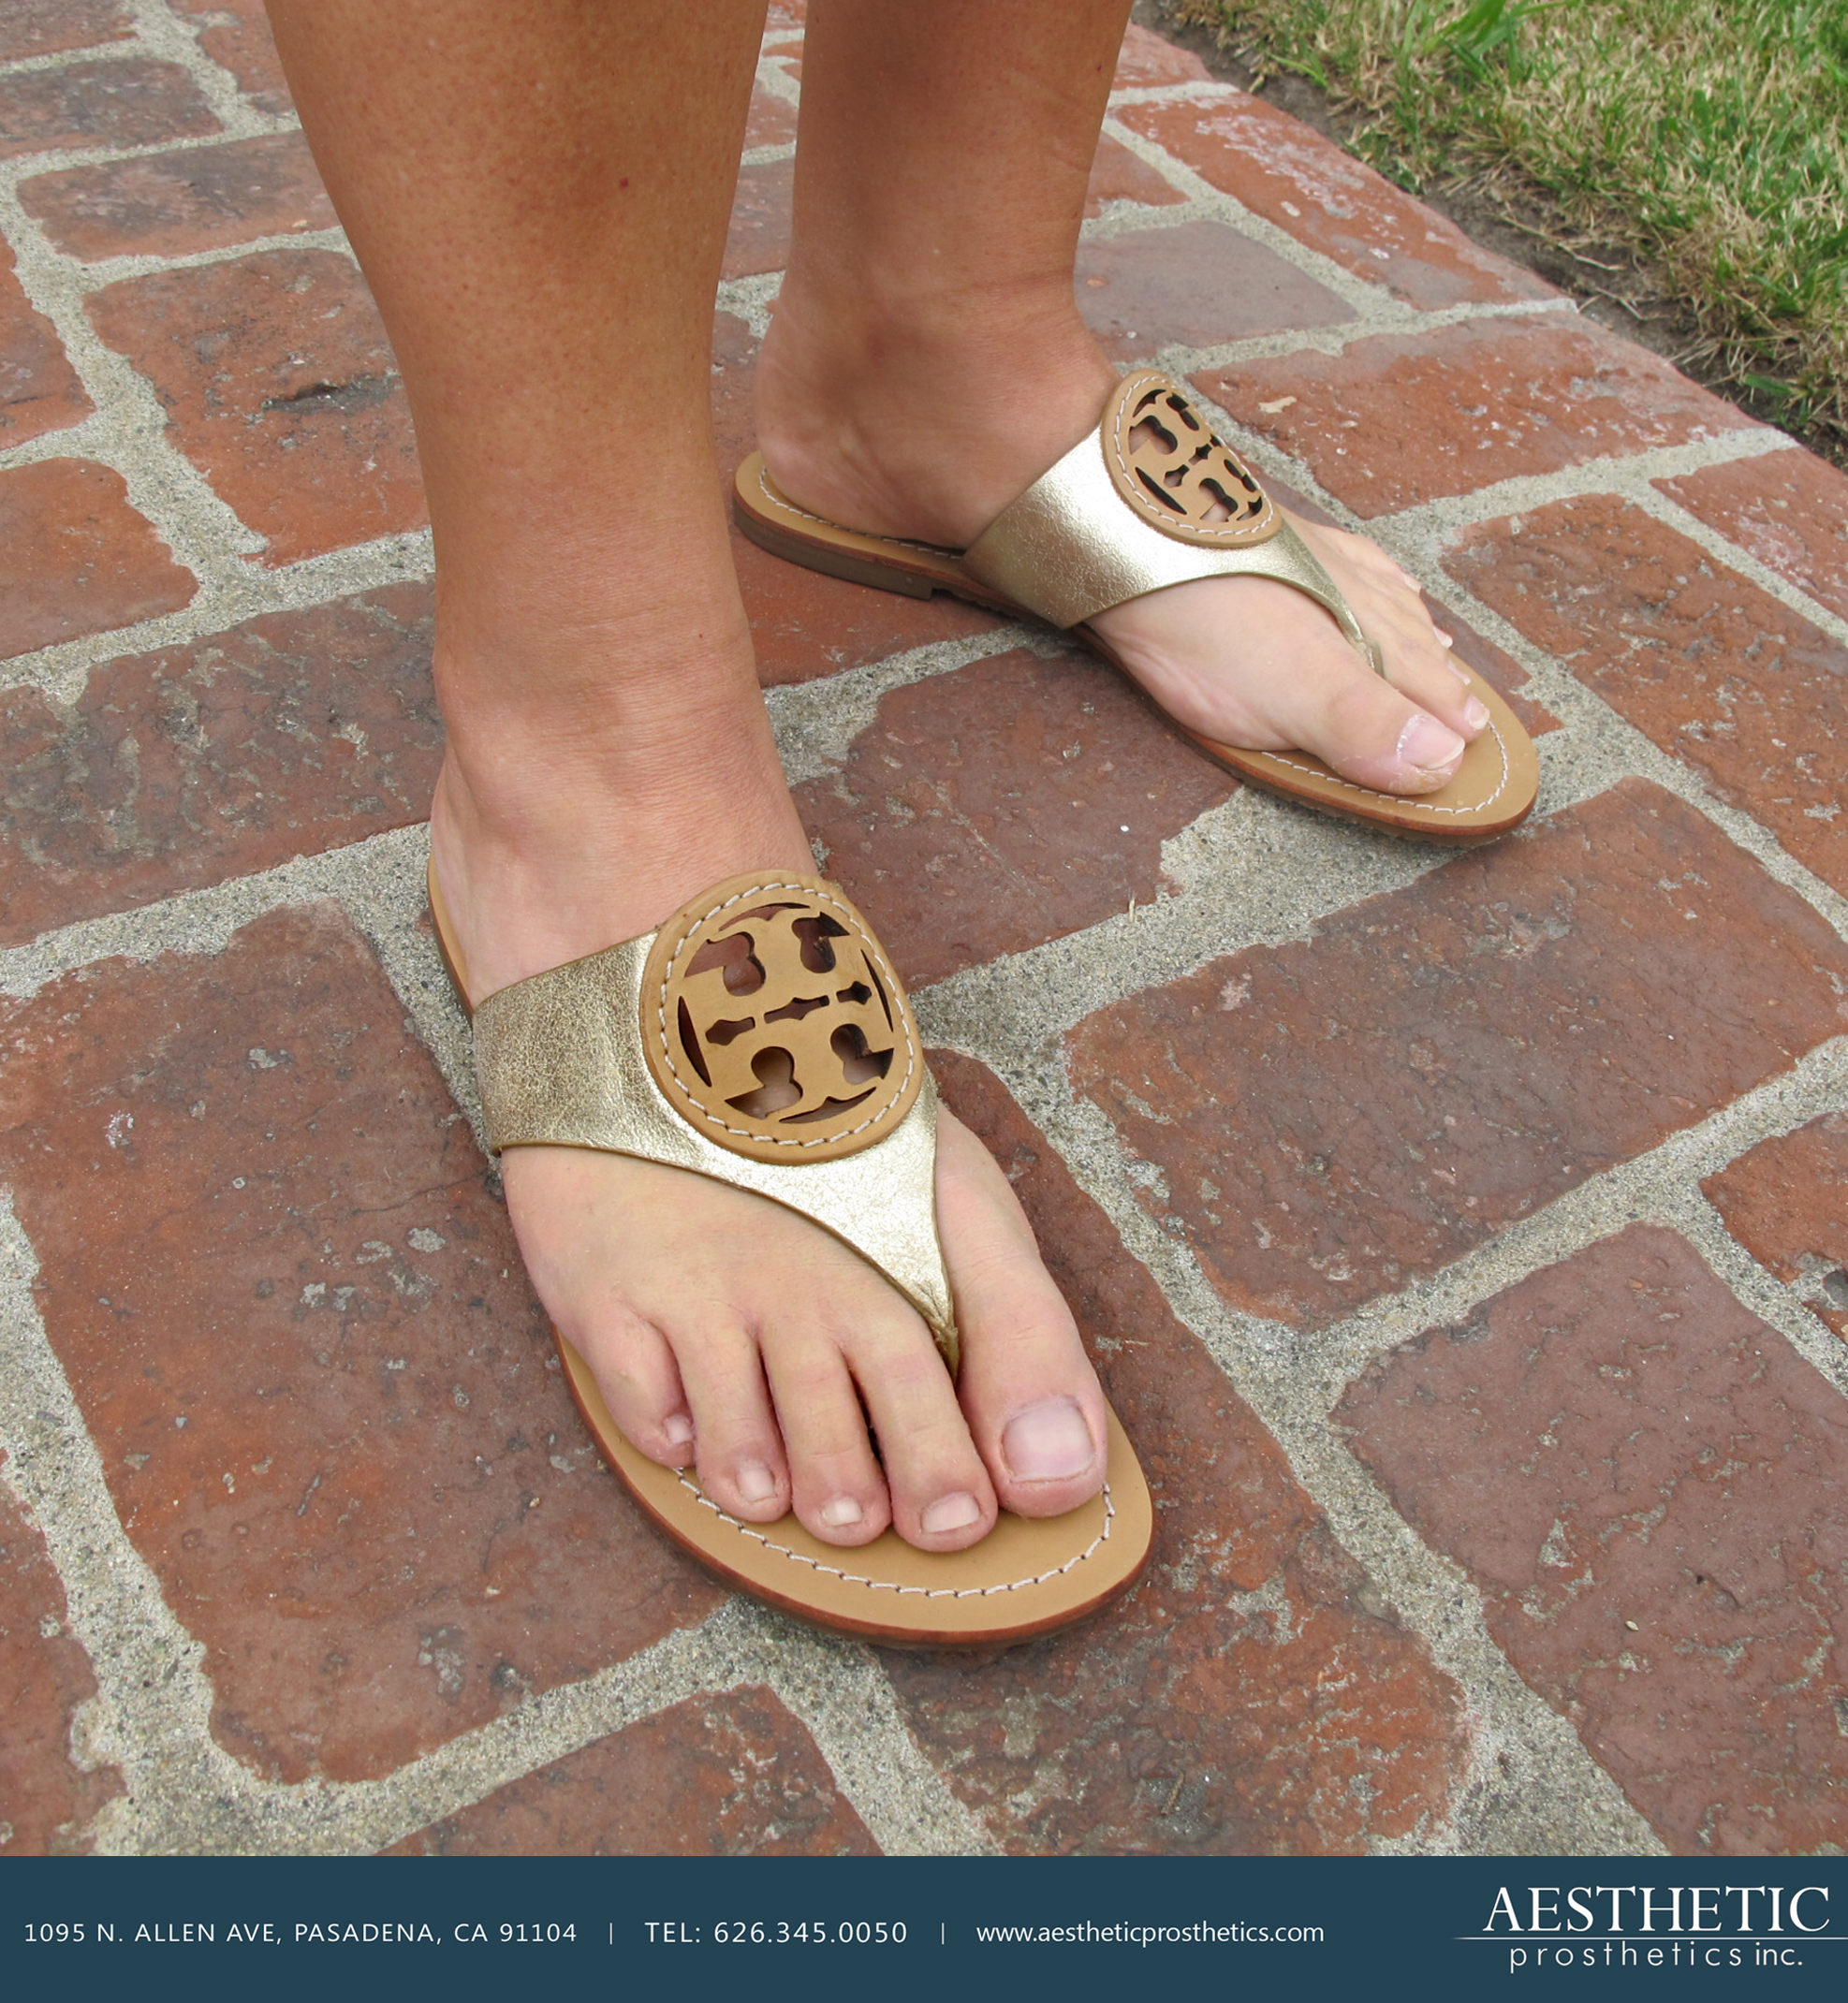 Caucasian woman wears Tory Burch sandals and highly realistic silicone prosthetic partial foot on her right foot made by aesthetic prosthetics in pasadena, california southern california los angeles